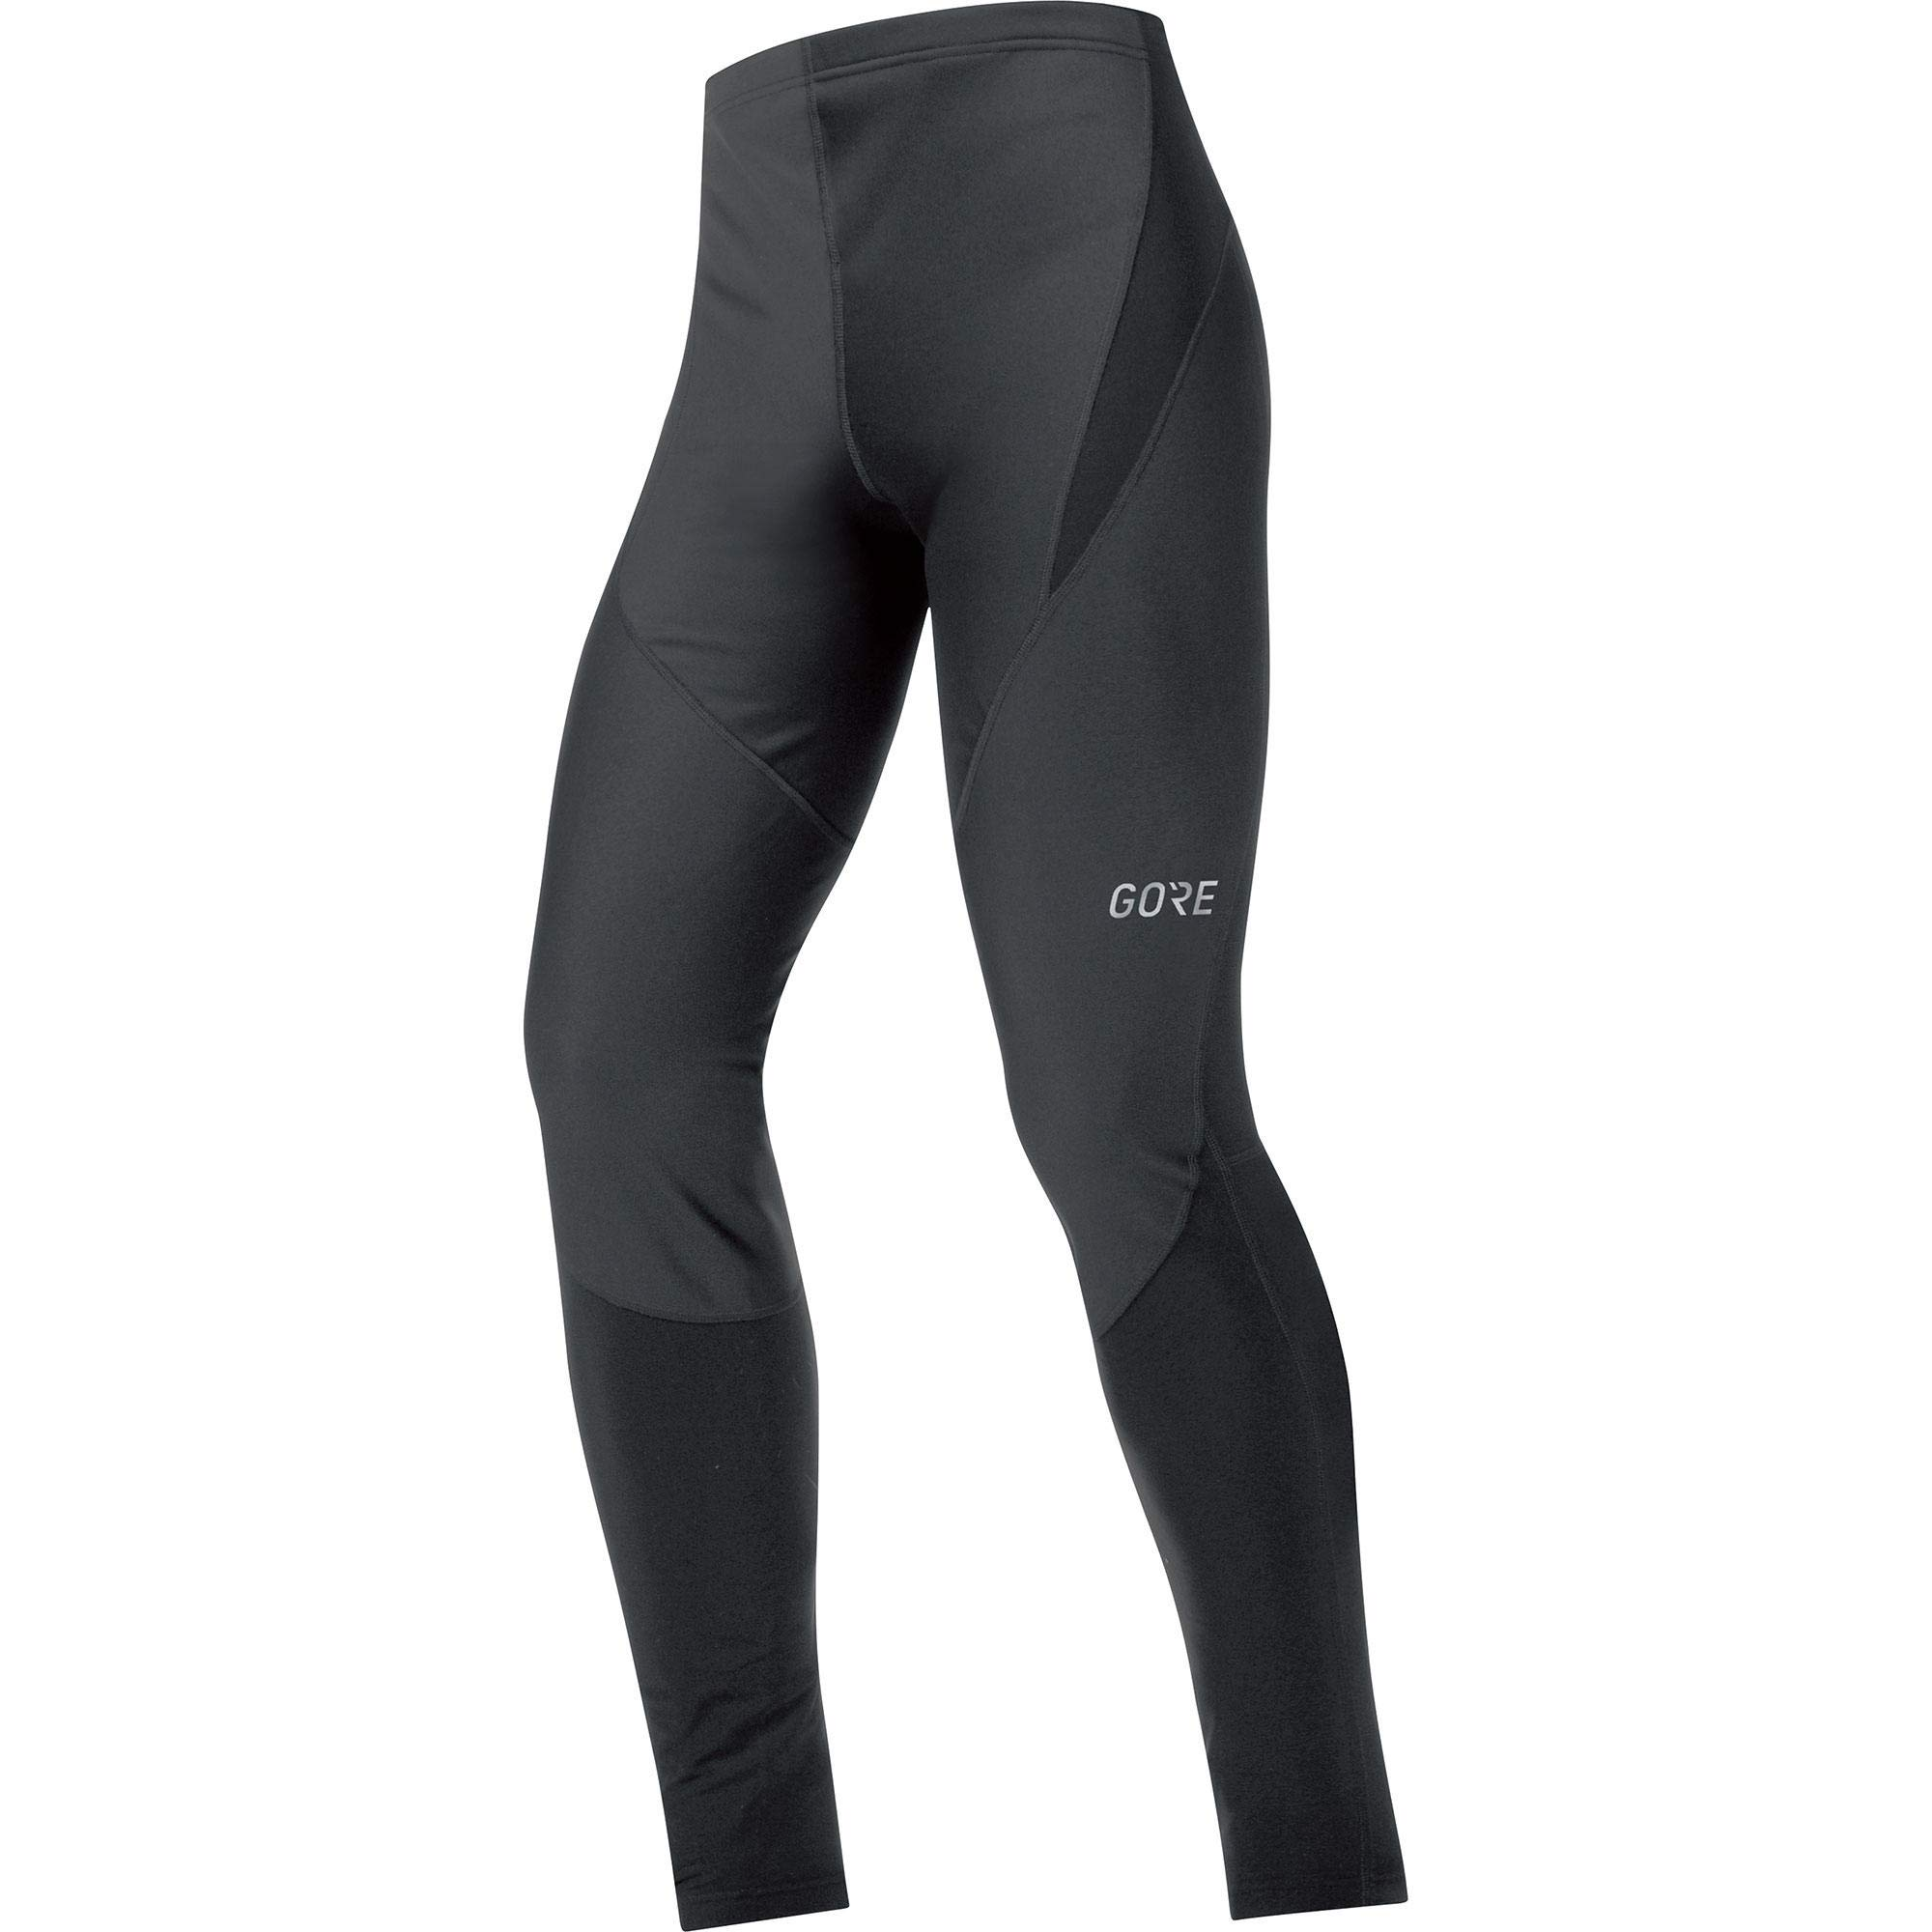 GORE WEAR Windproof Men's Cycling Tights, C3 Partial Gore Windstopper Tights, M, Black, 100407